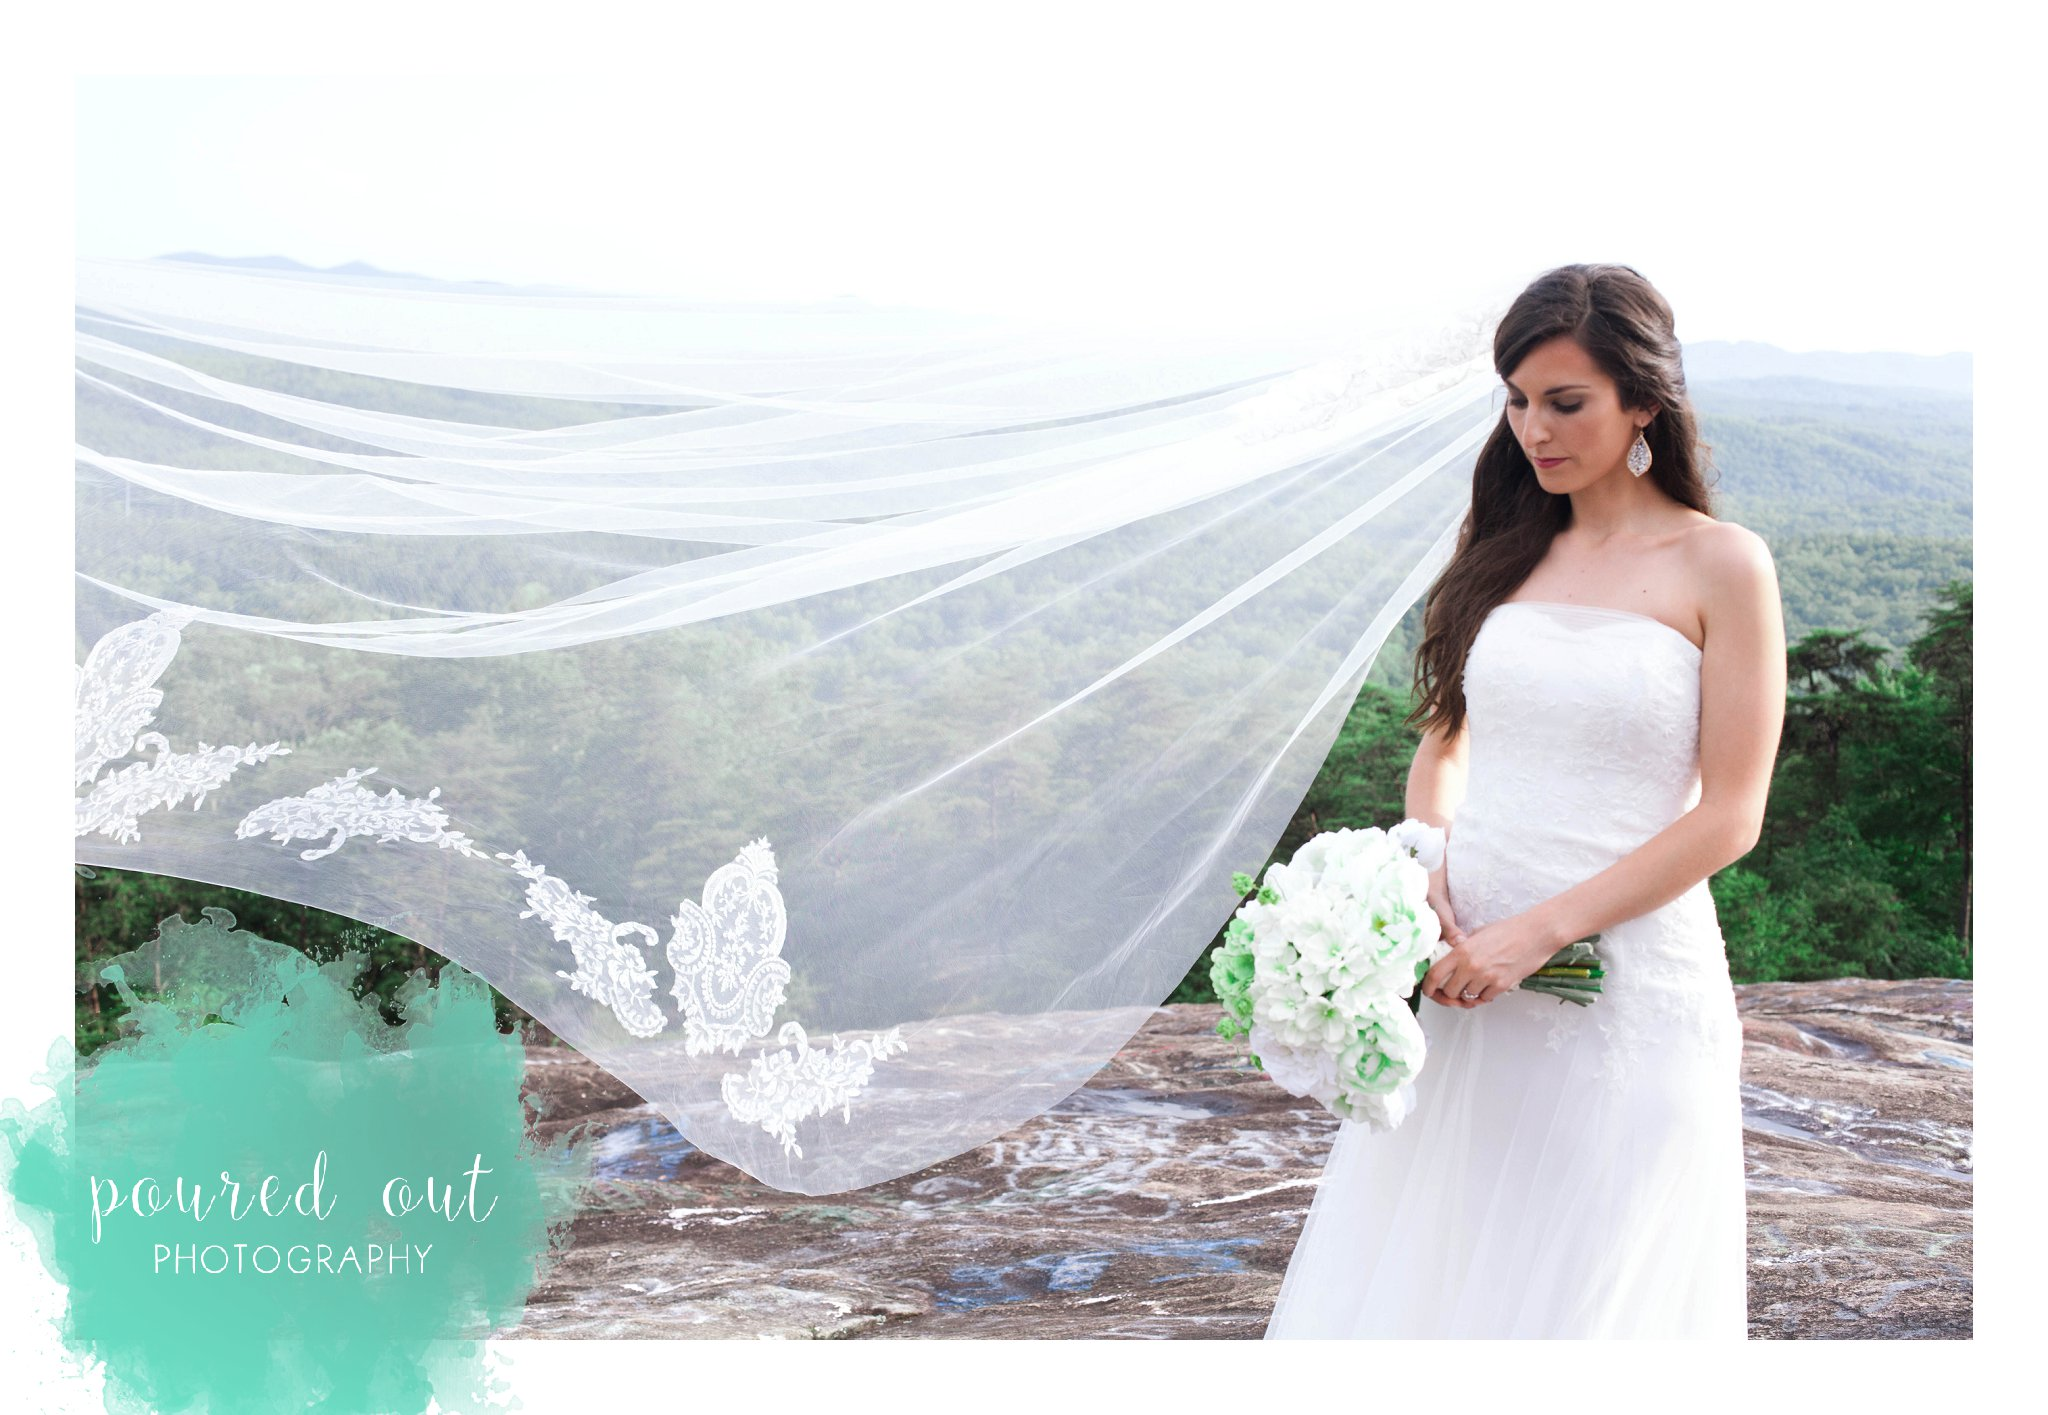 dani_bridal_poured_out_photography-64_WEB.jpg